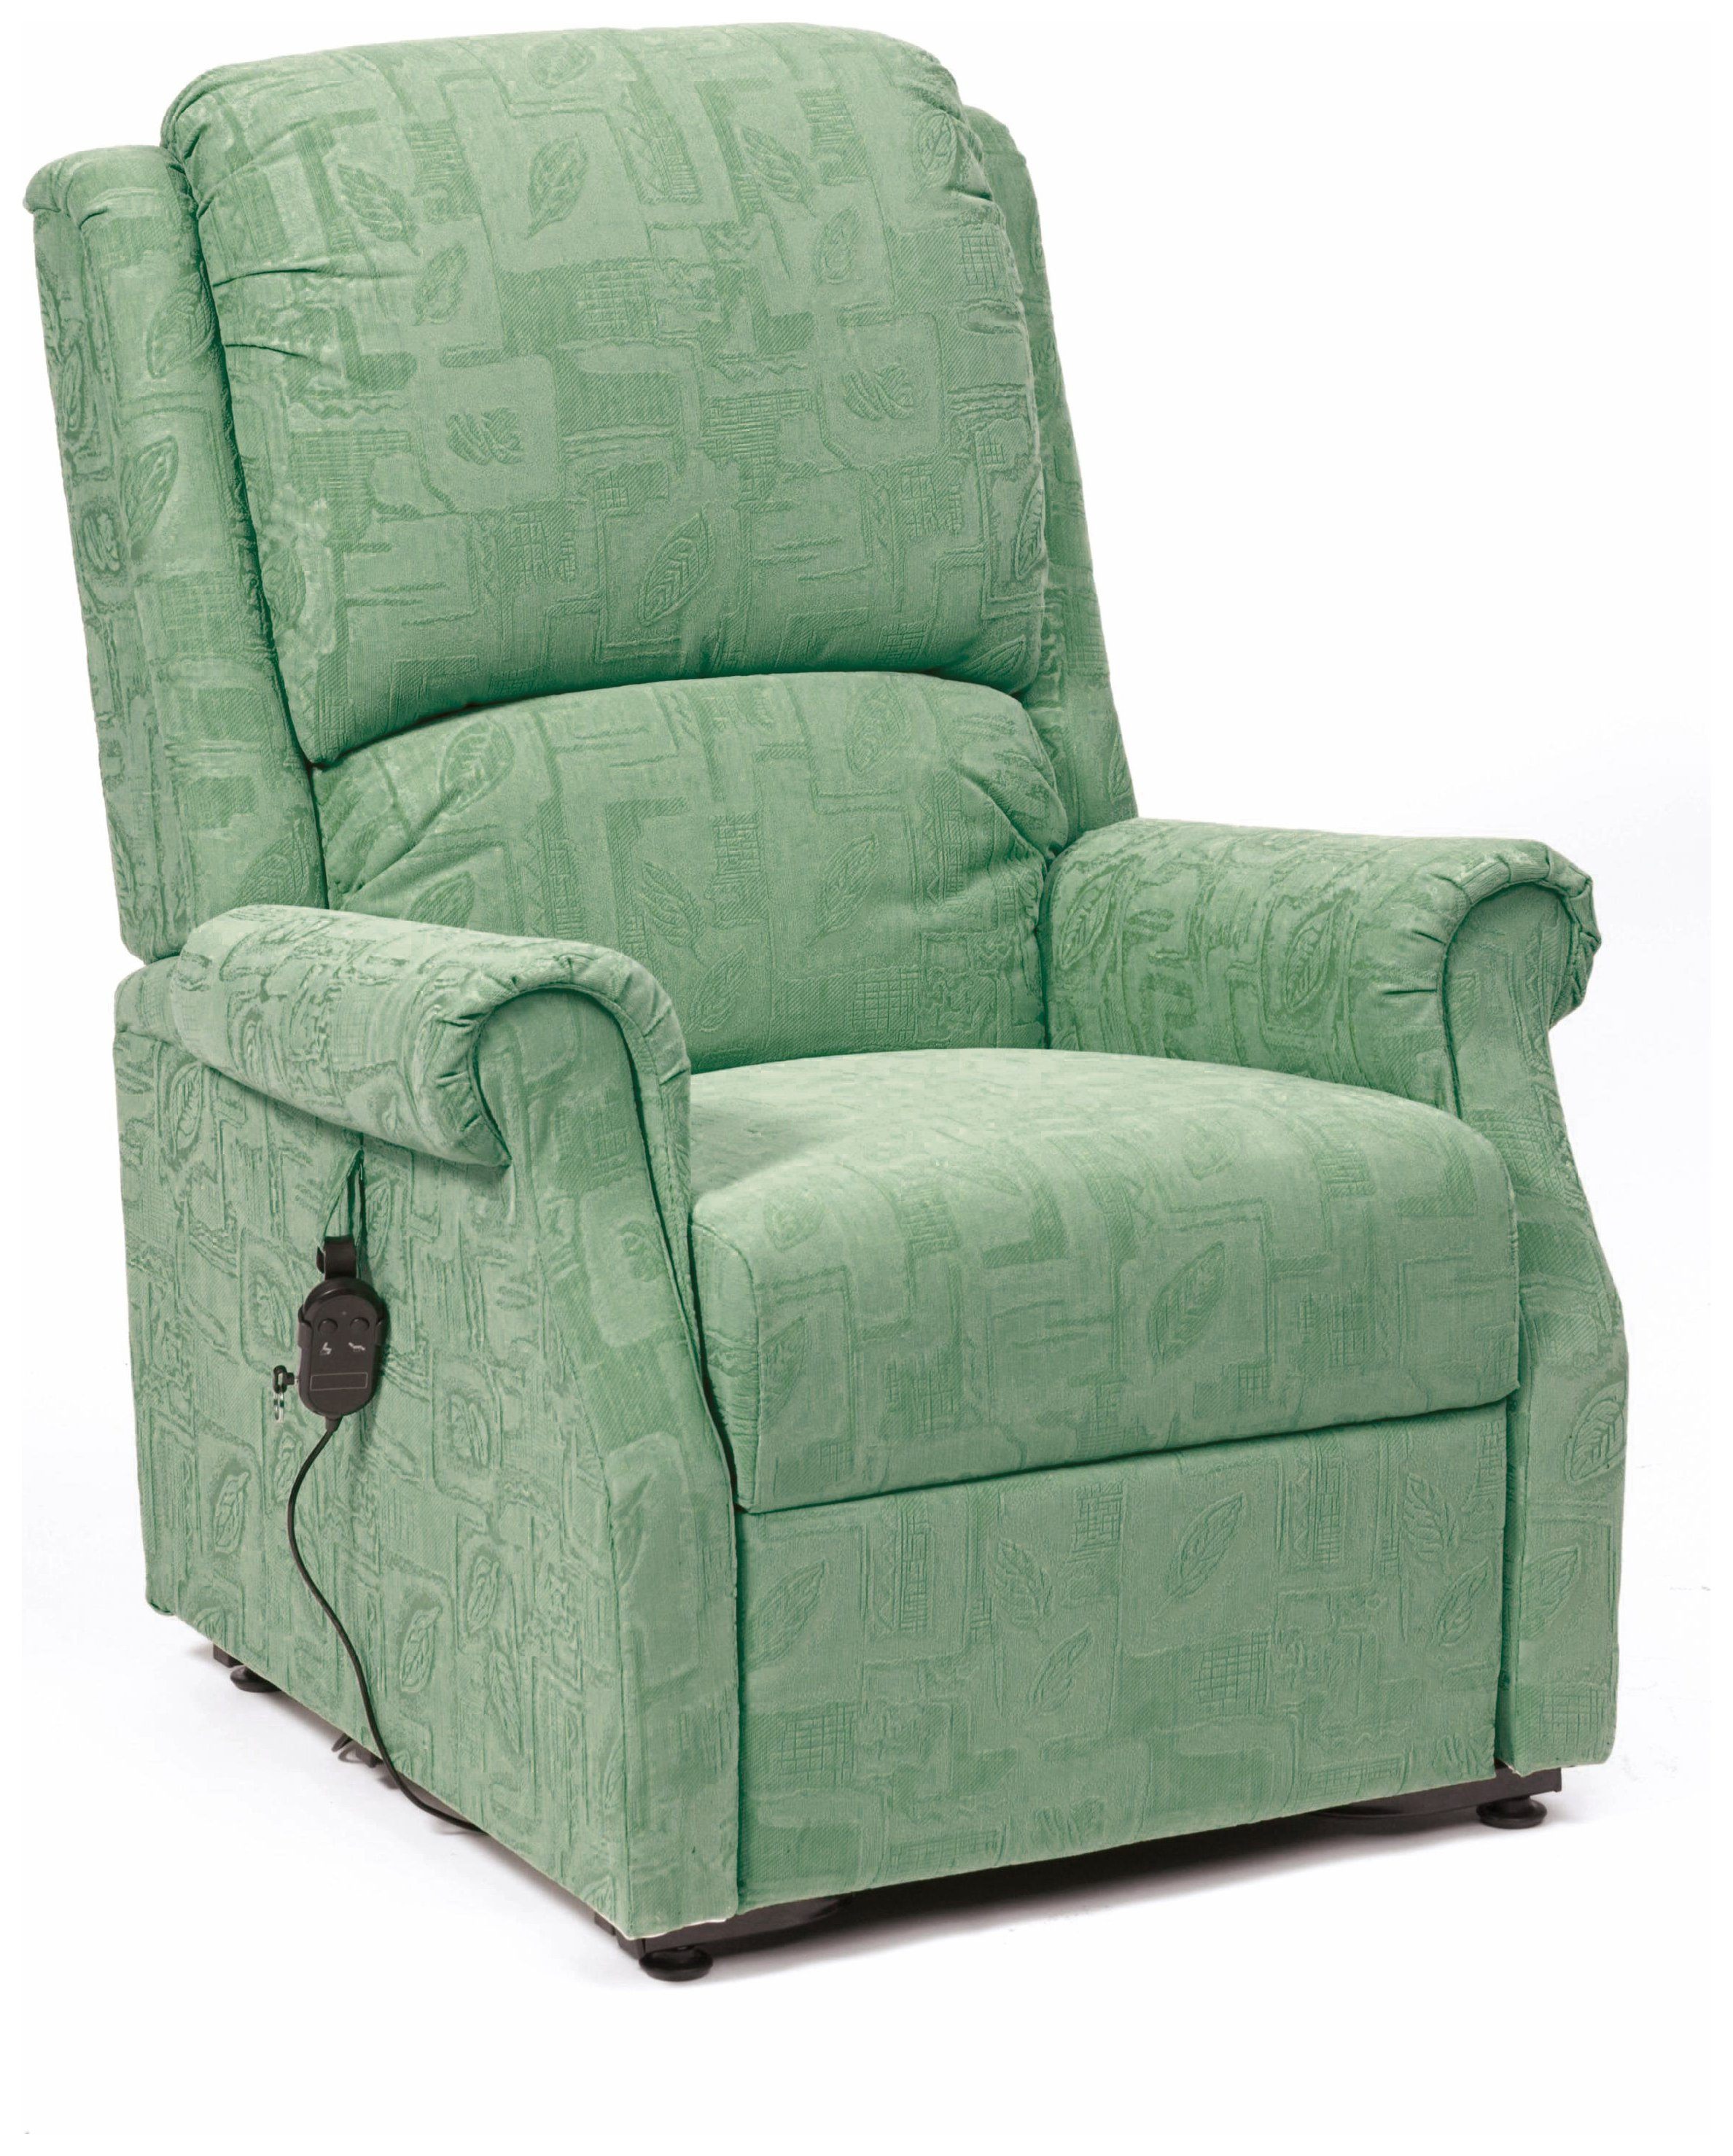 Image of Chicago Riser Recliner Chair with Single Motor - Green.